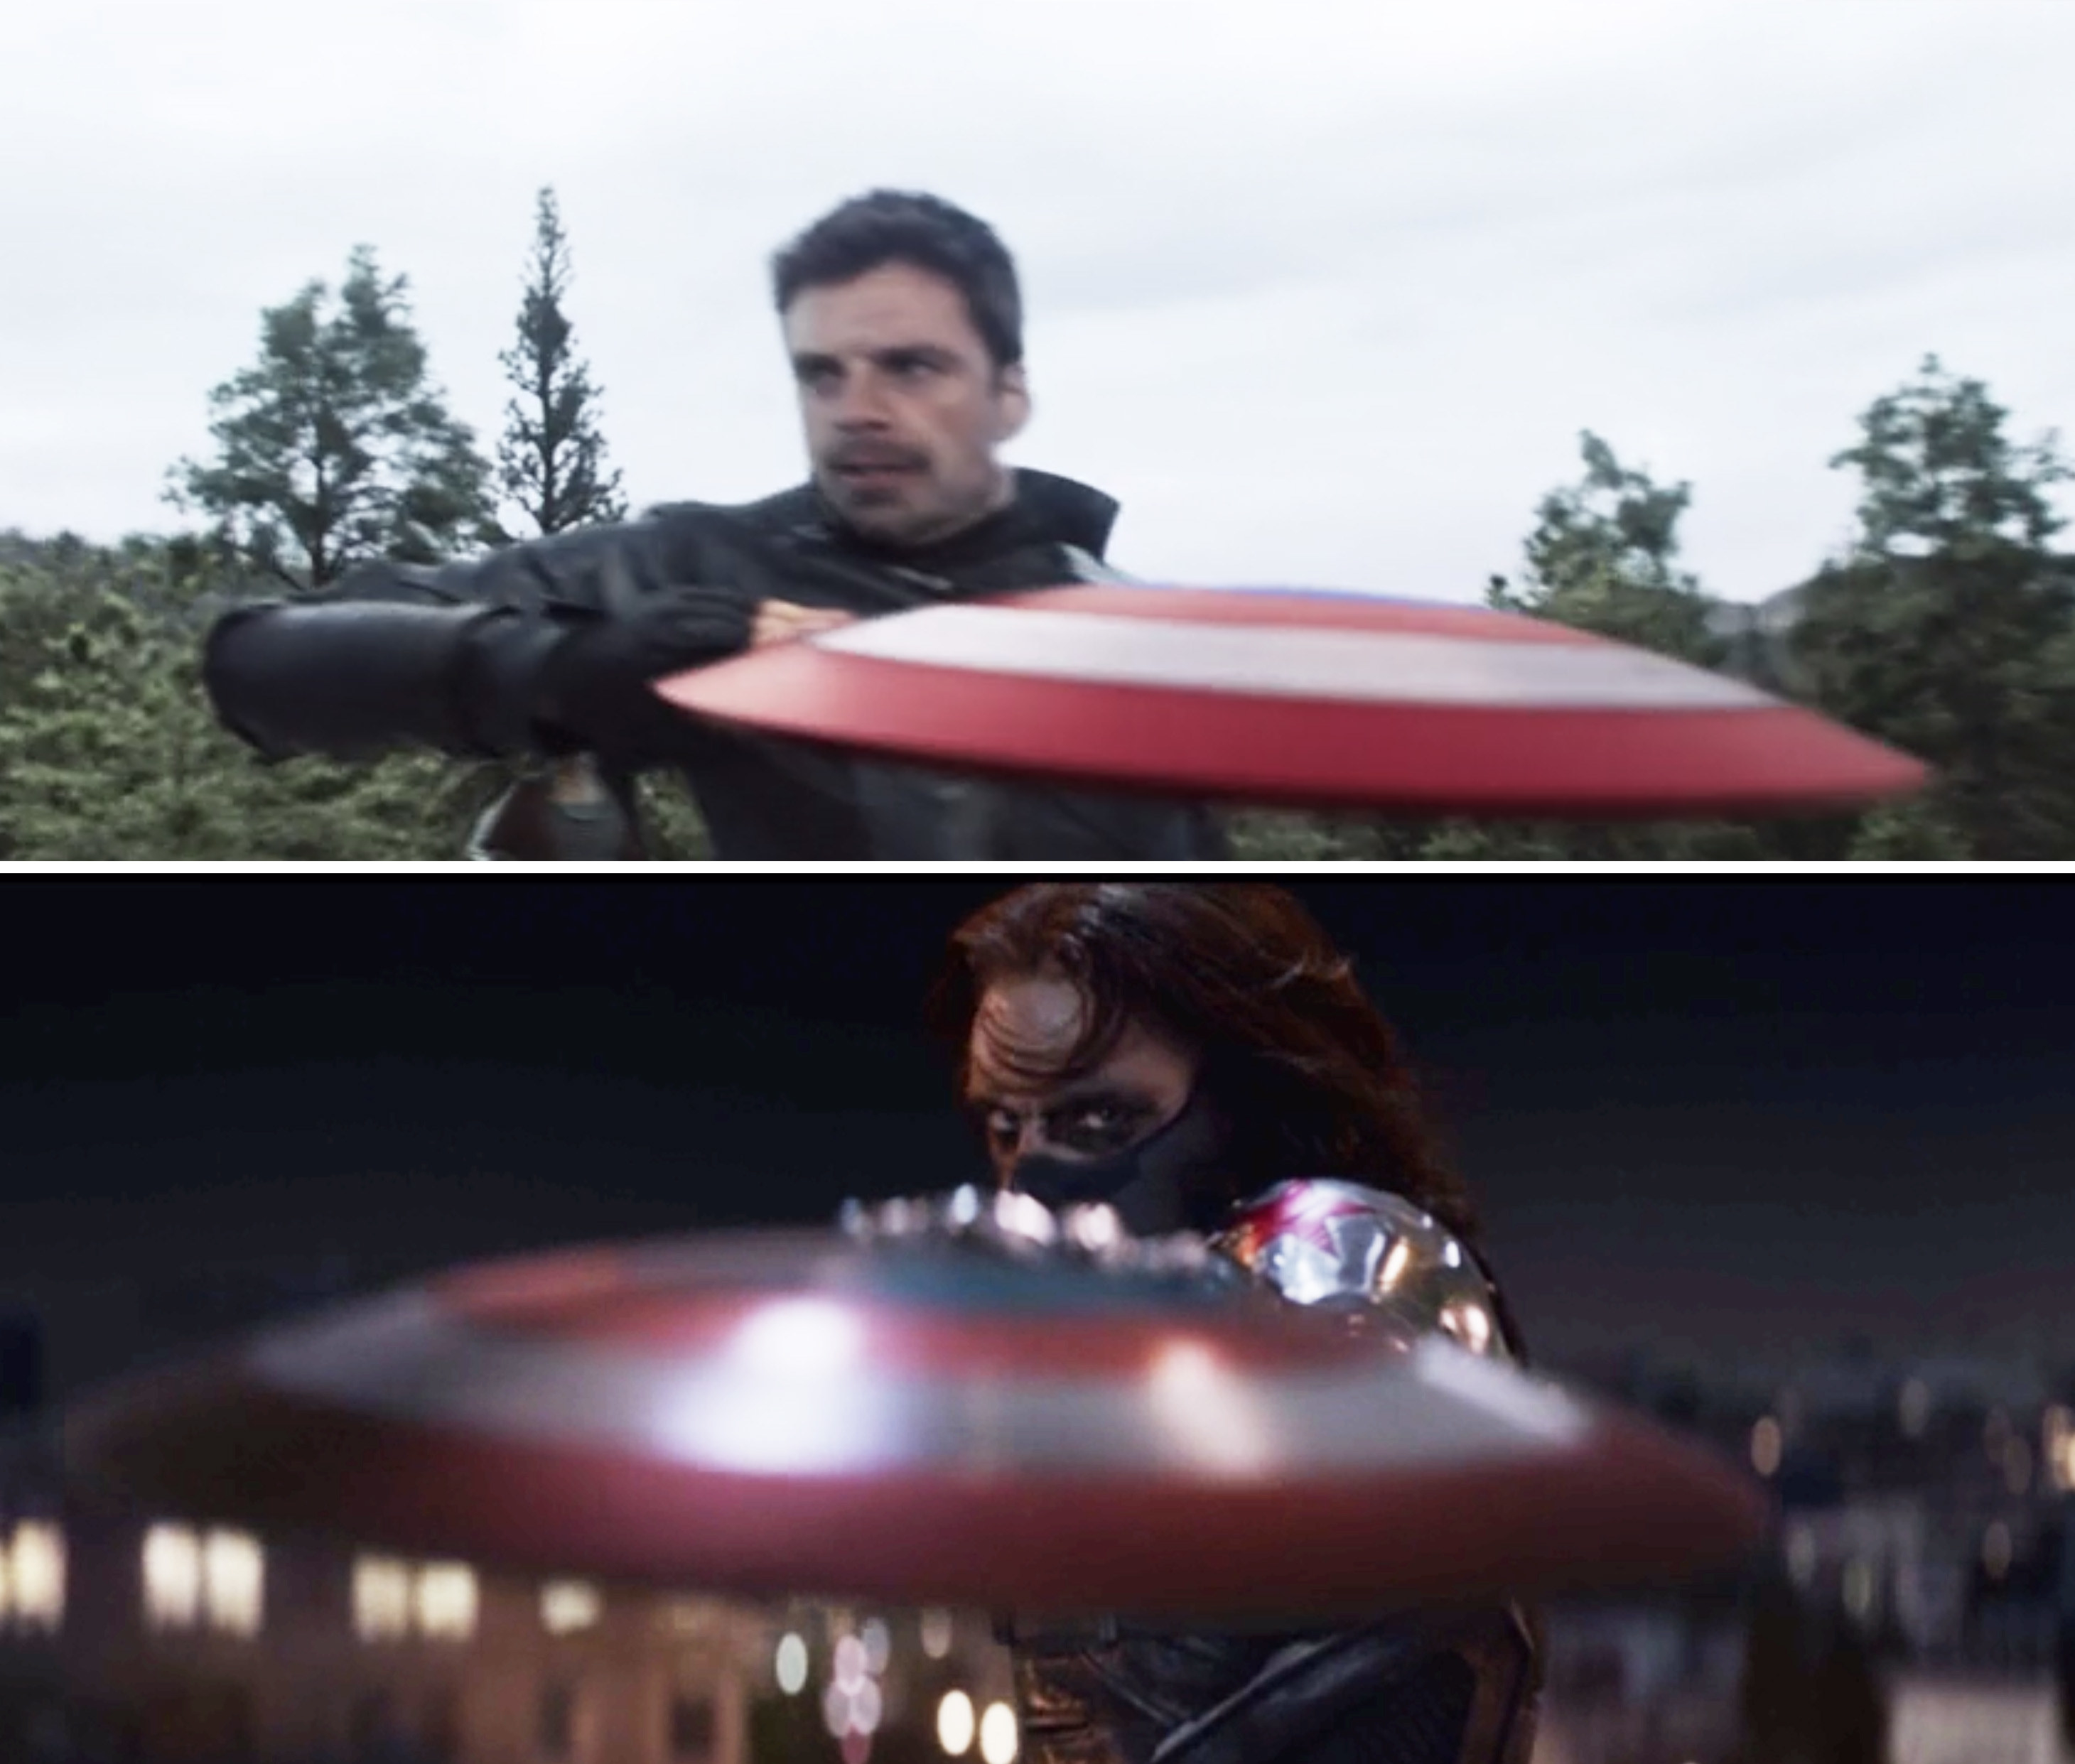 Bucky catching Captain America's shield with his hand